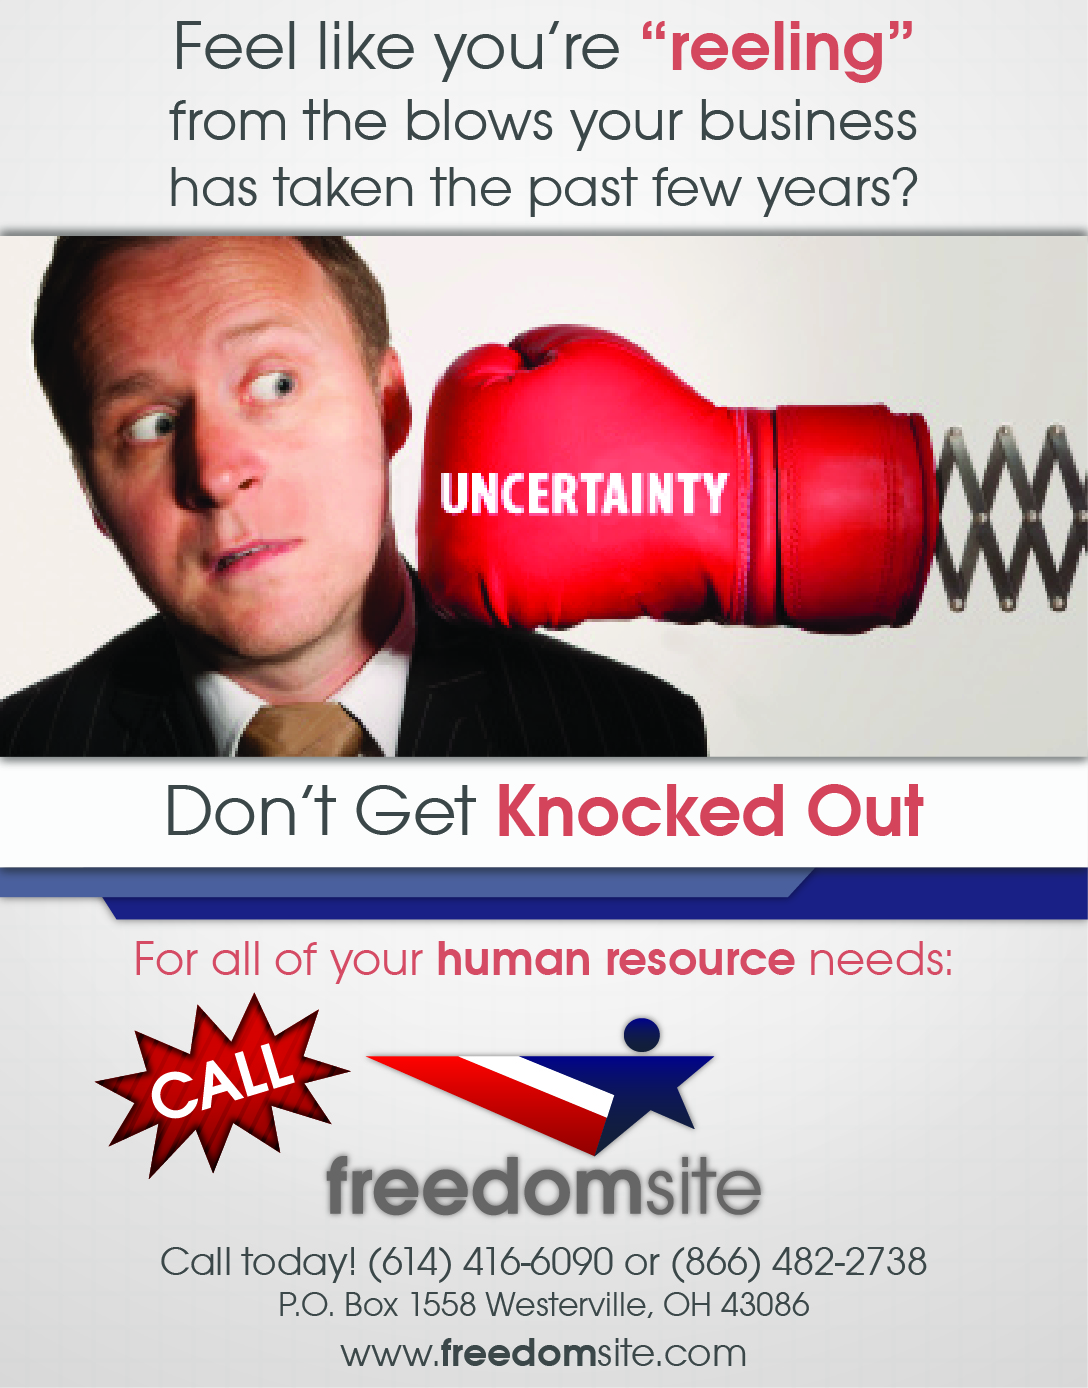 Freedomstaff Uncertainty CBP Ad